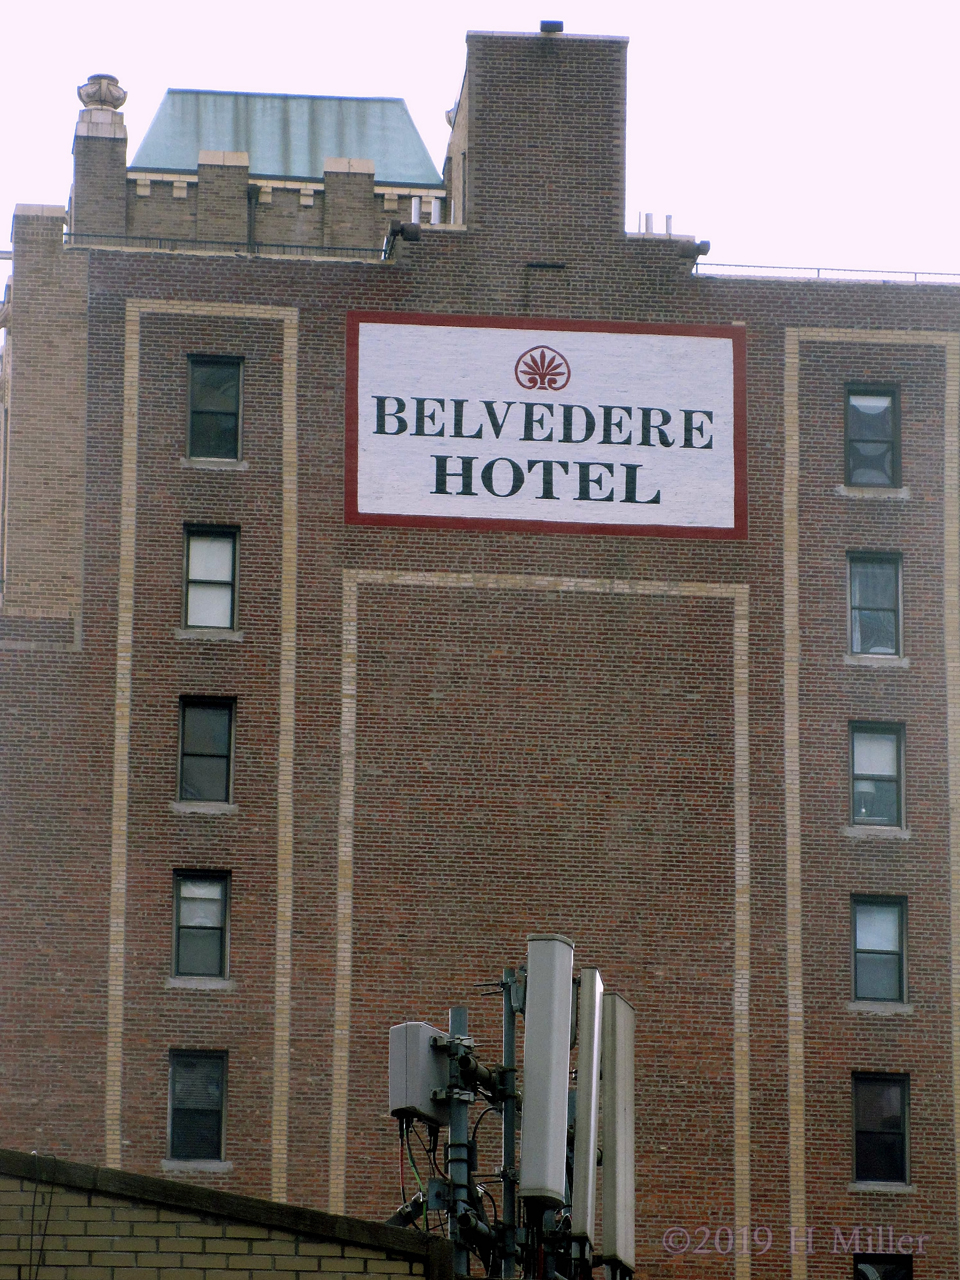 An Outdoor View of the Belvedere Hotel in Manhattan